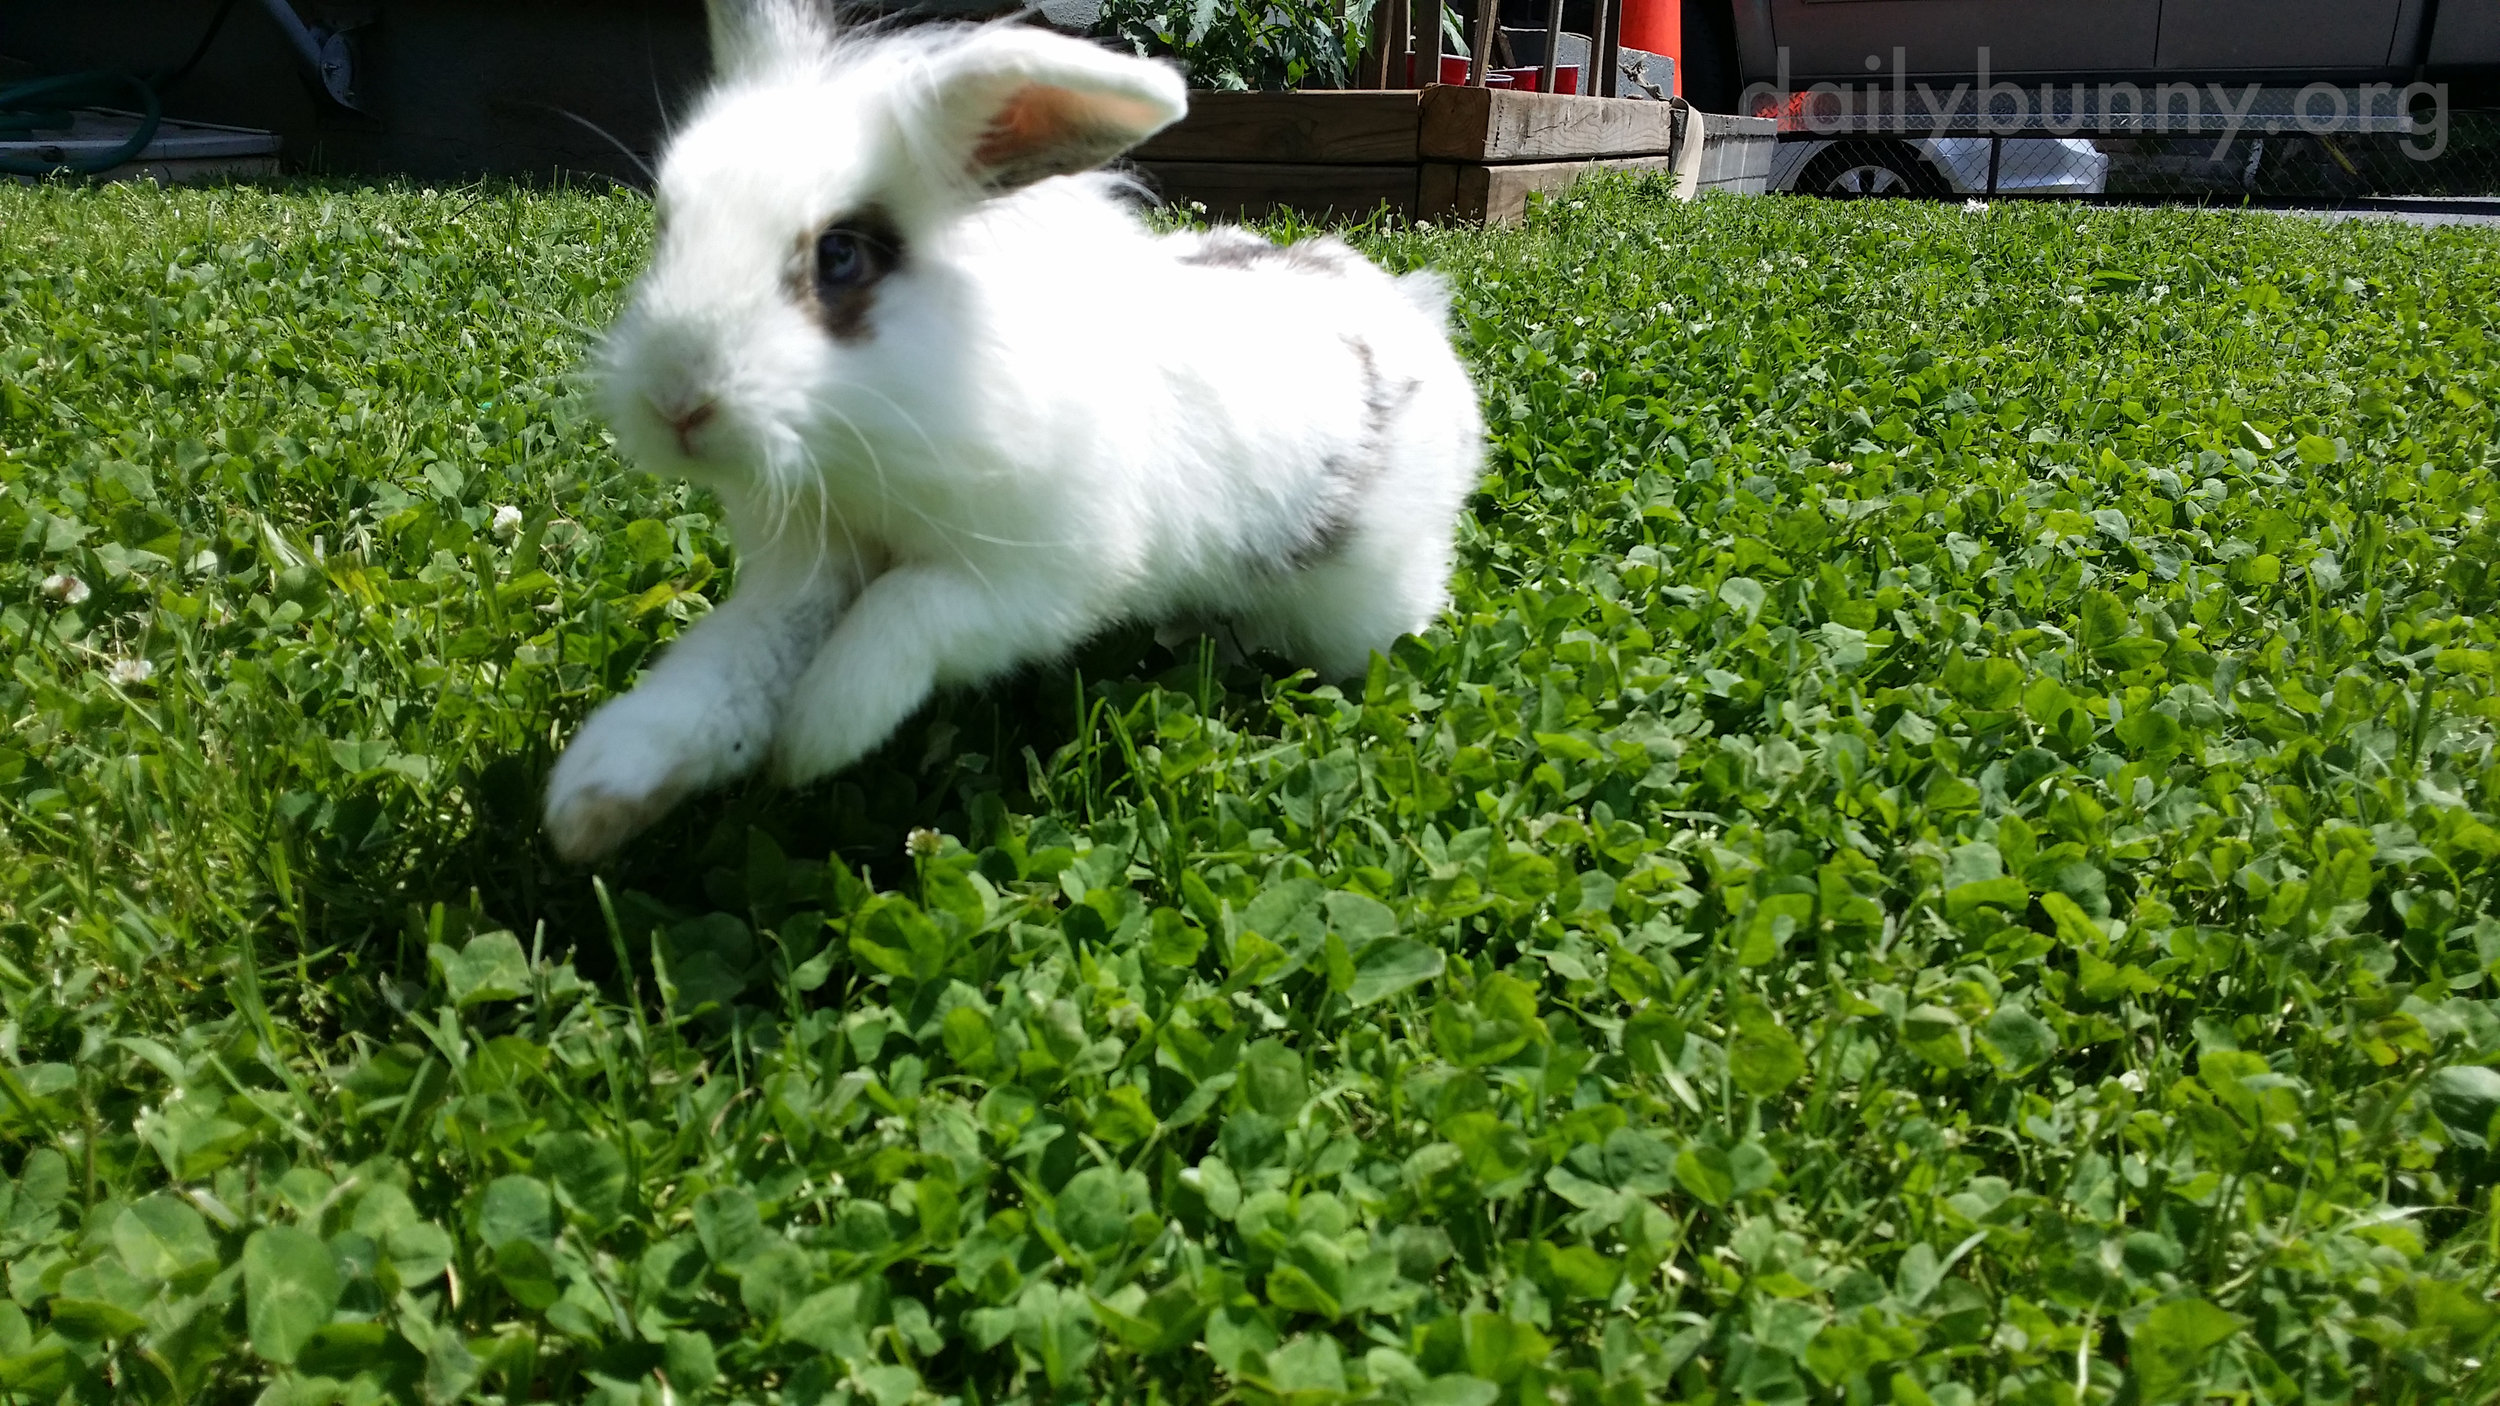 Bunny Romps Through the Grass